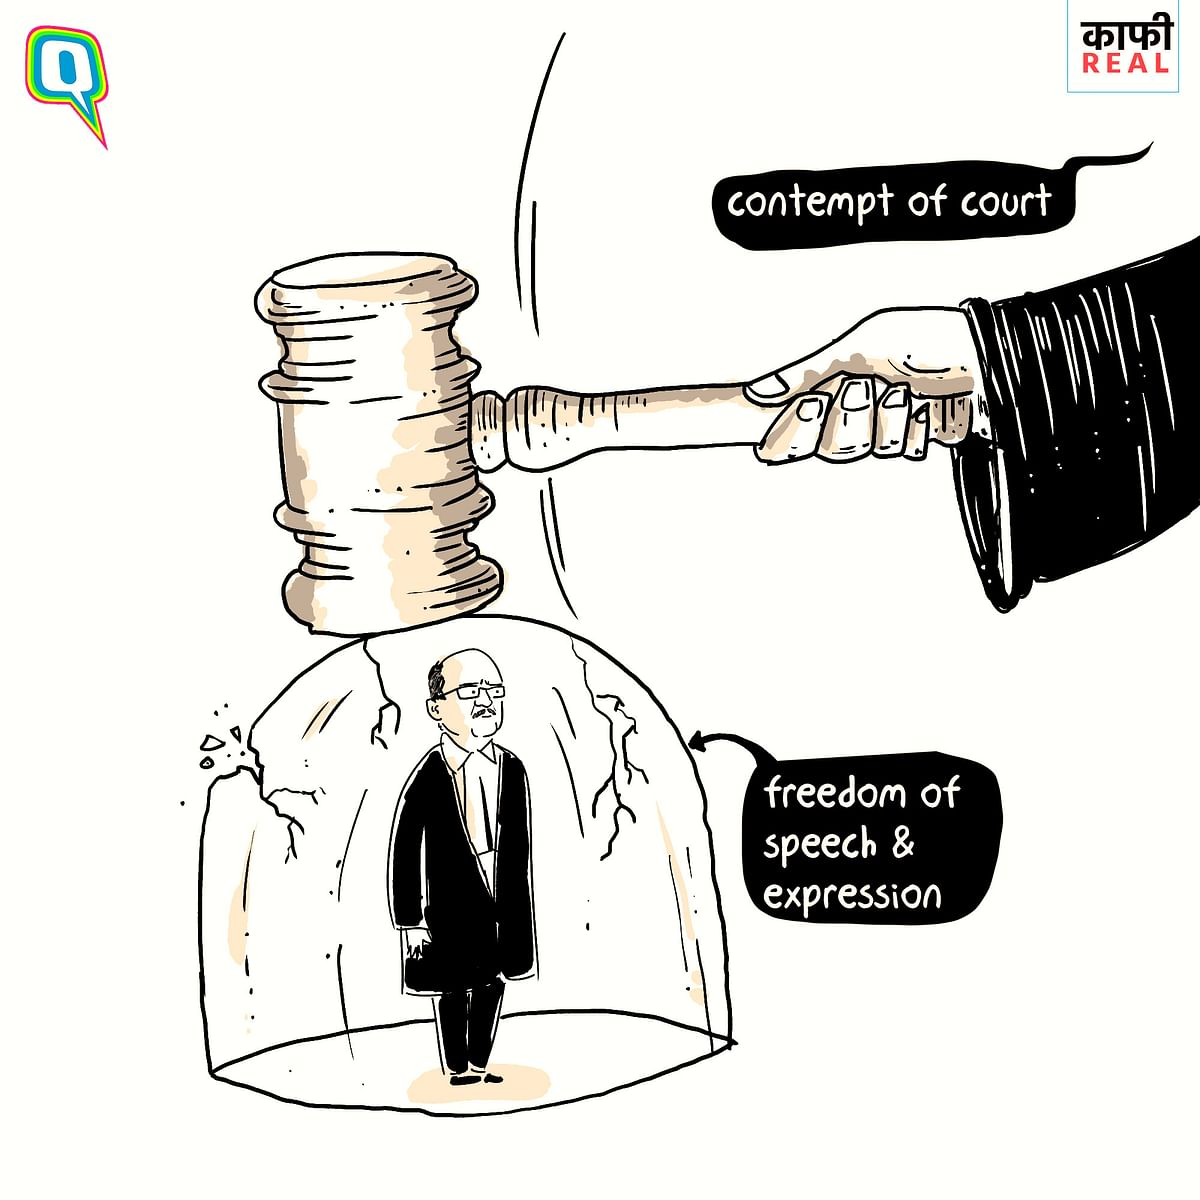 Kaafi Real: Contempt of Court Amid Freedom of Speech & Expression